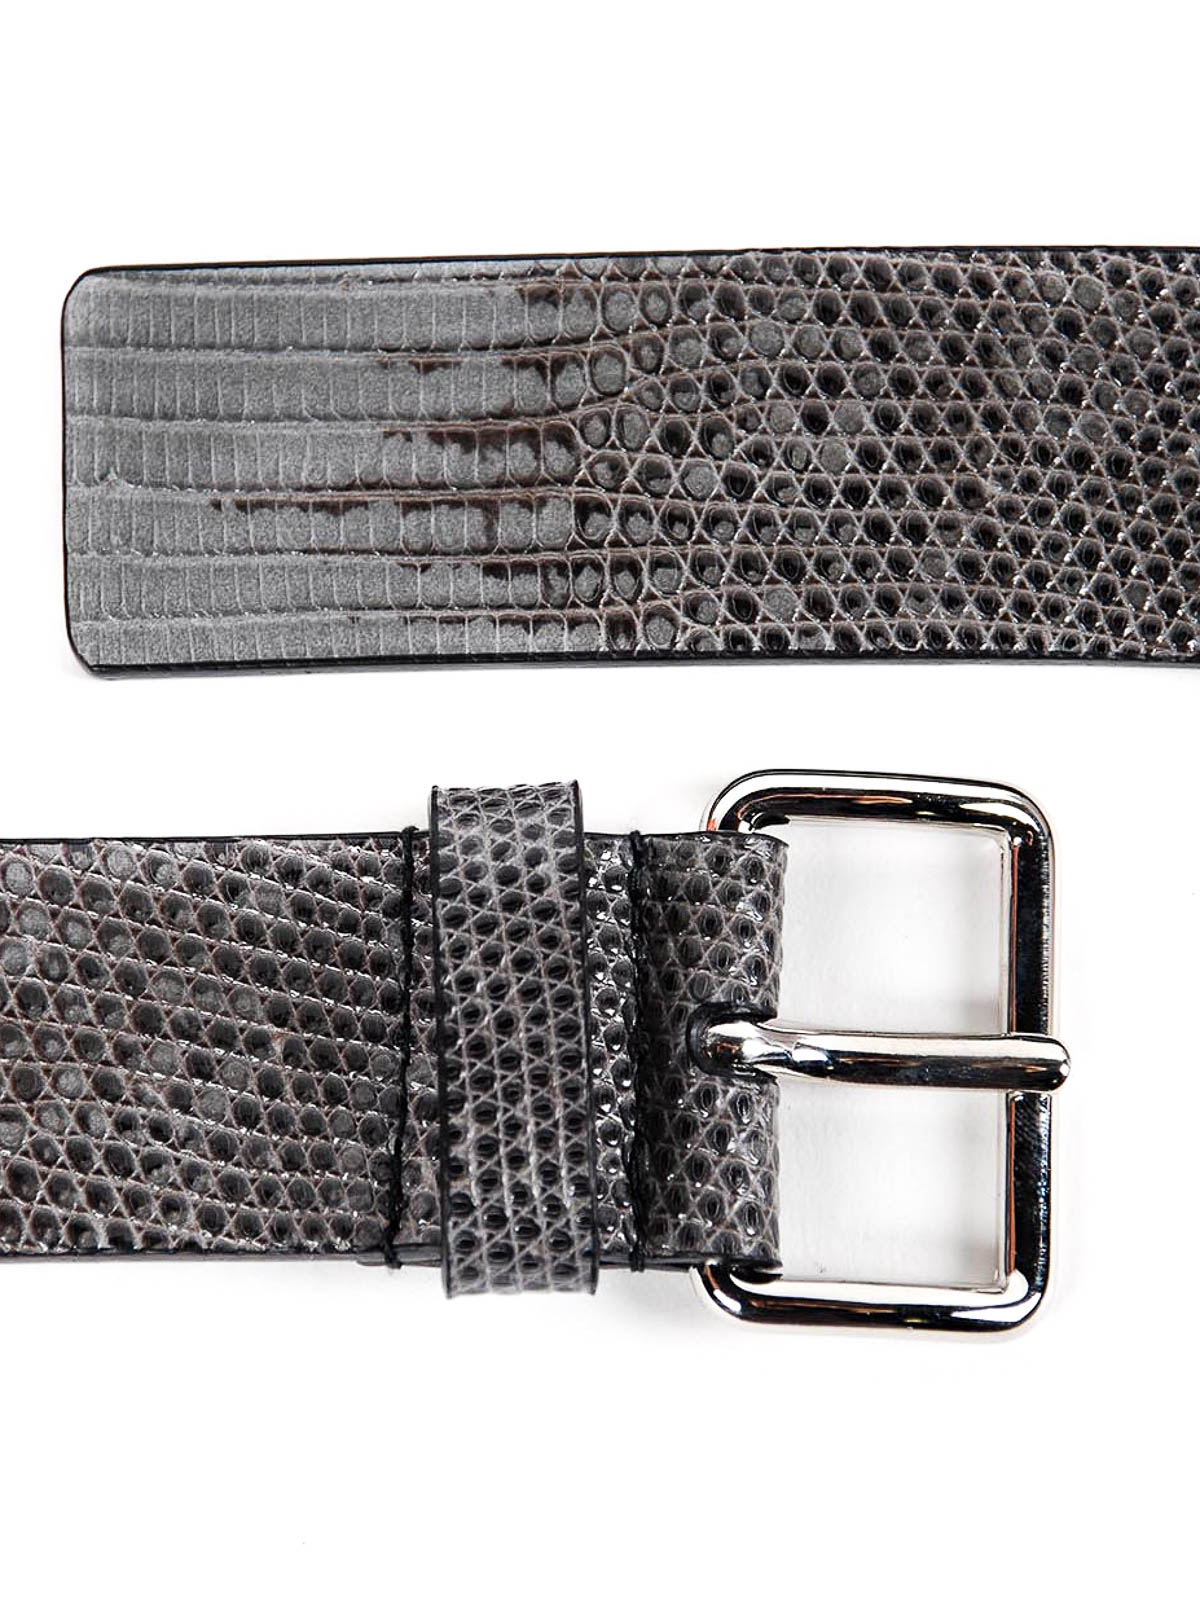 Men's Belts: Free Shipping on orders over $45 at megasmm.gq - Your Online Belts Store! Get 5% in rewards with Club O!